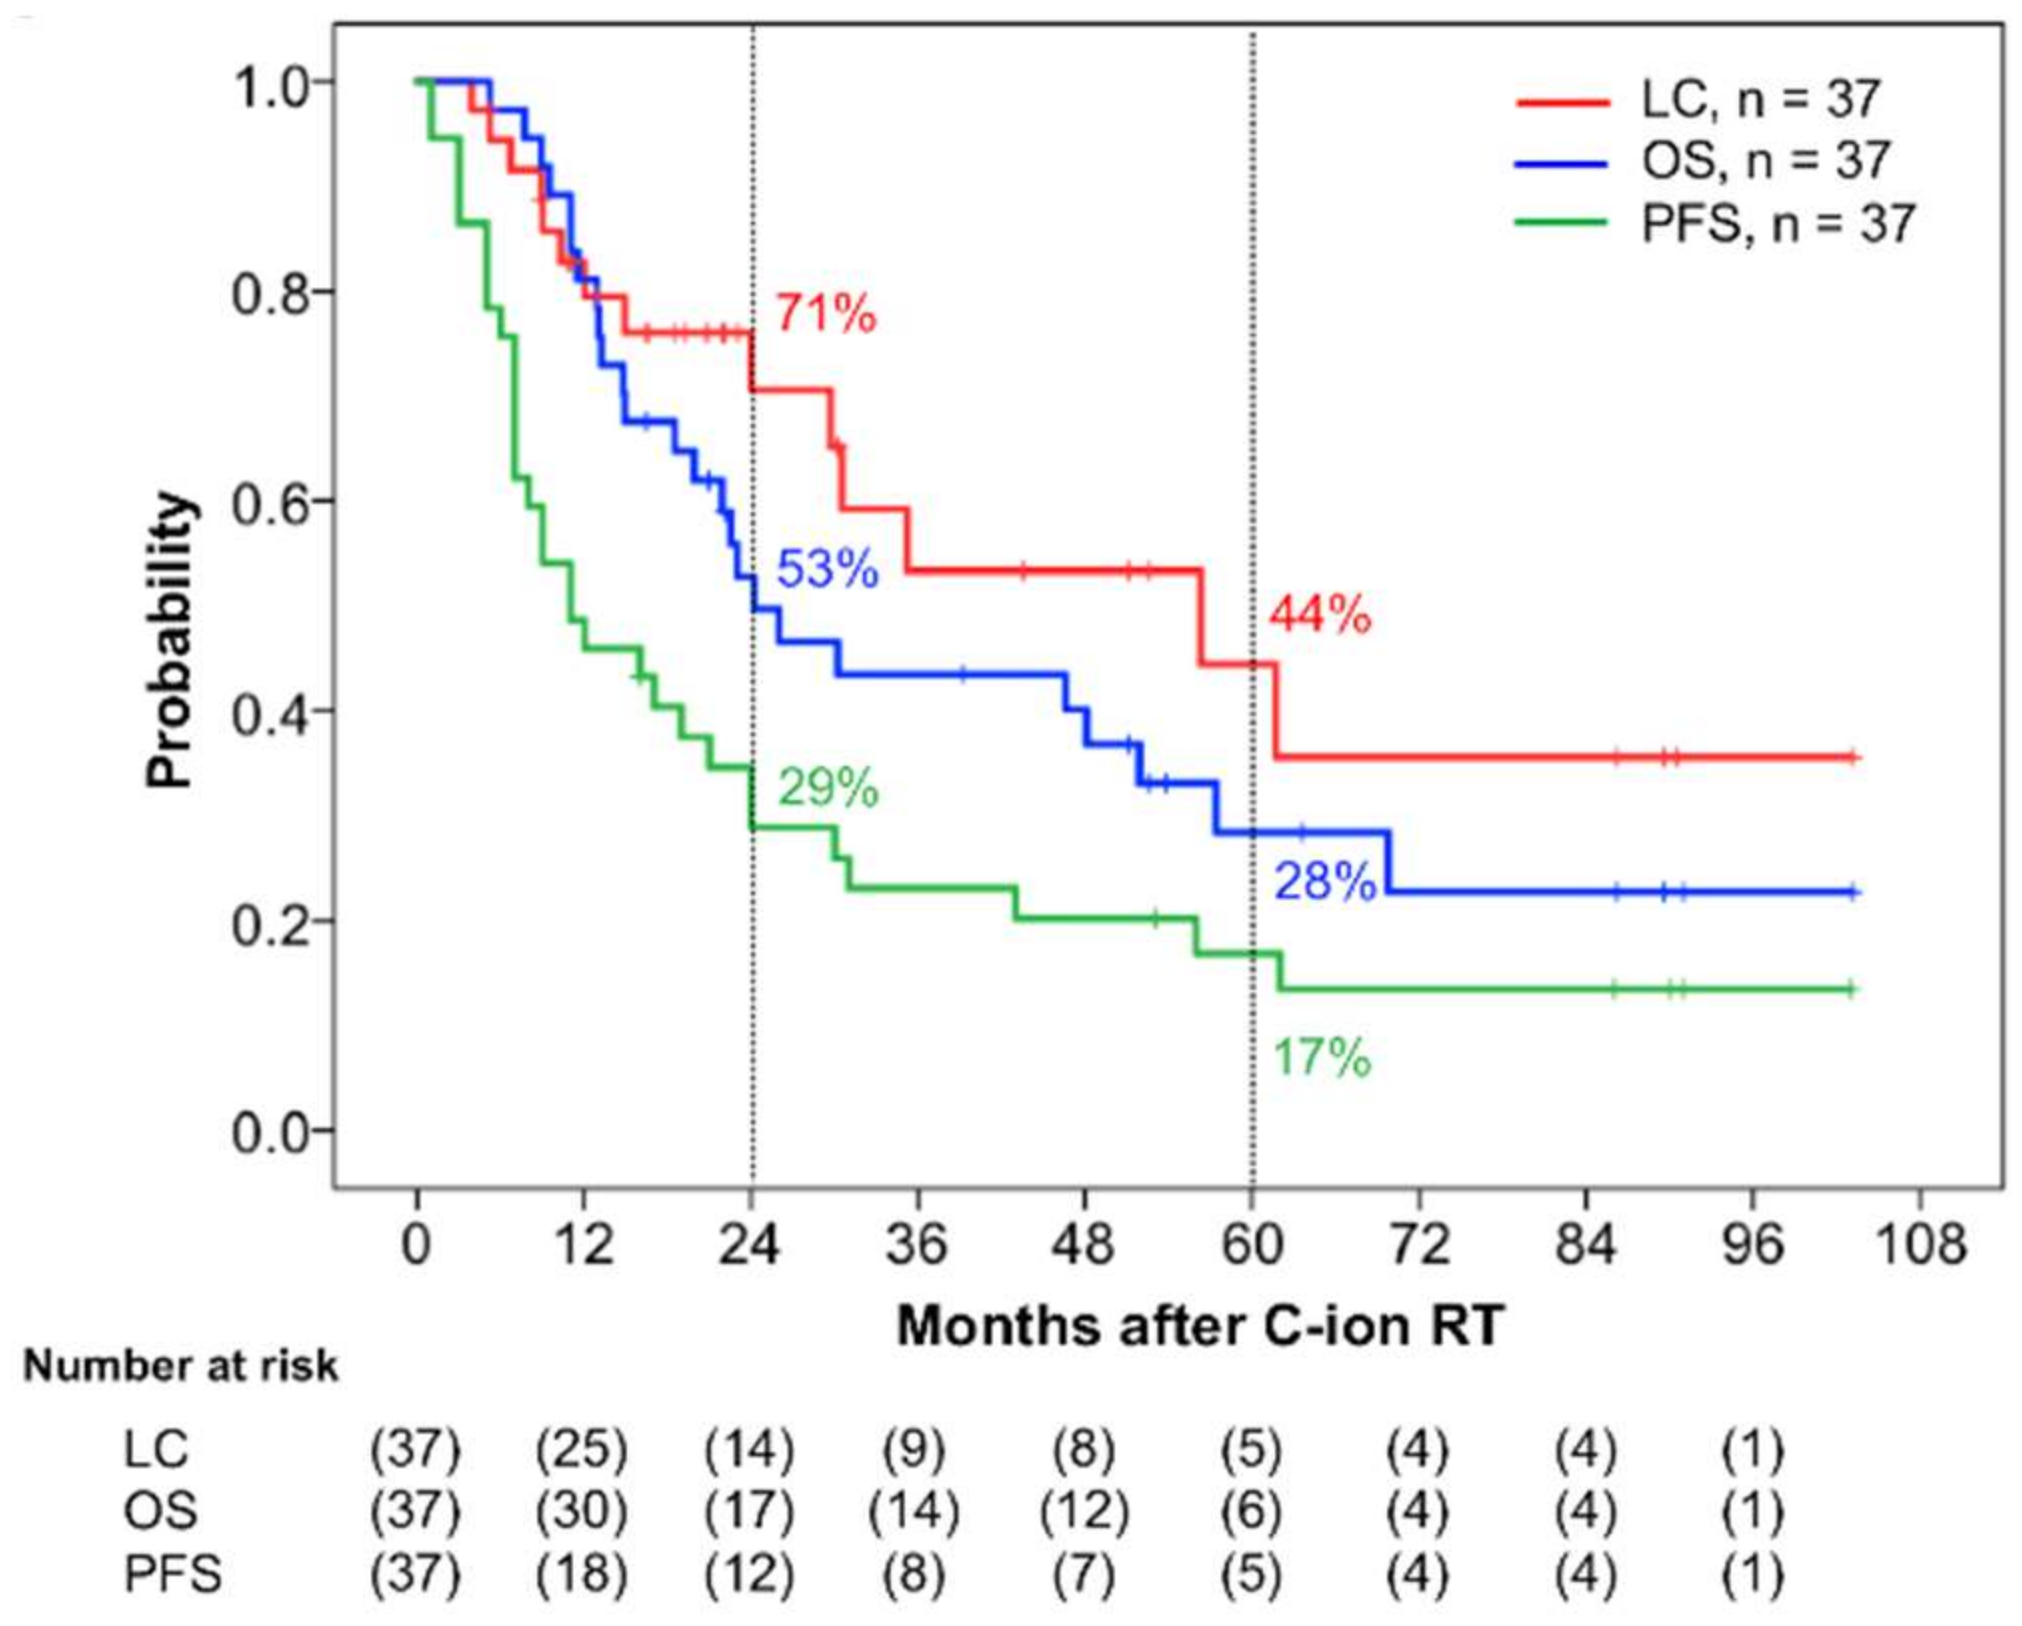 Cancers | Free Full-Text | Long-Term Outcomes of Carbon-Ion